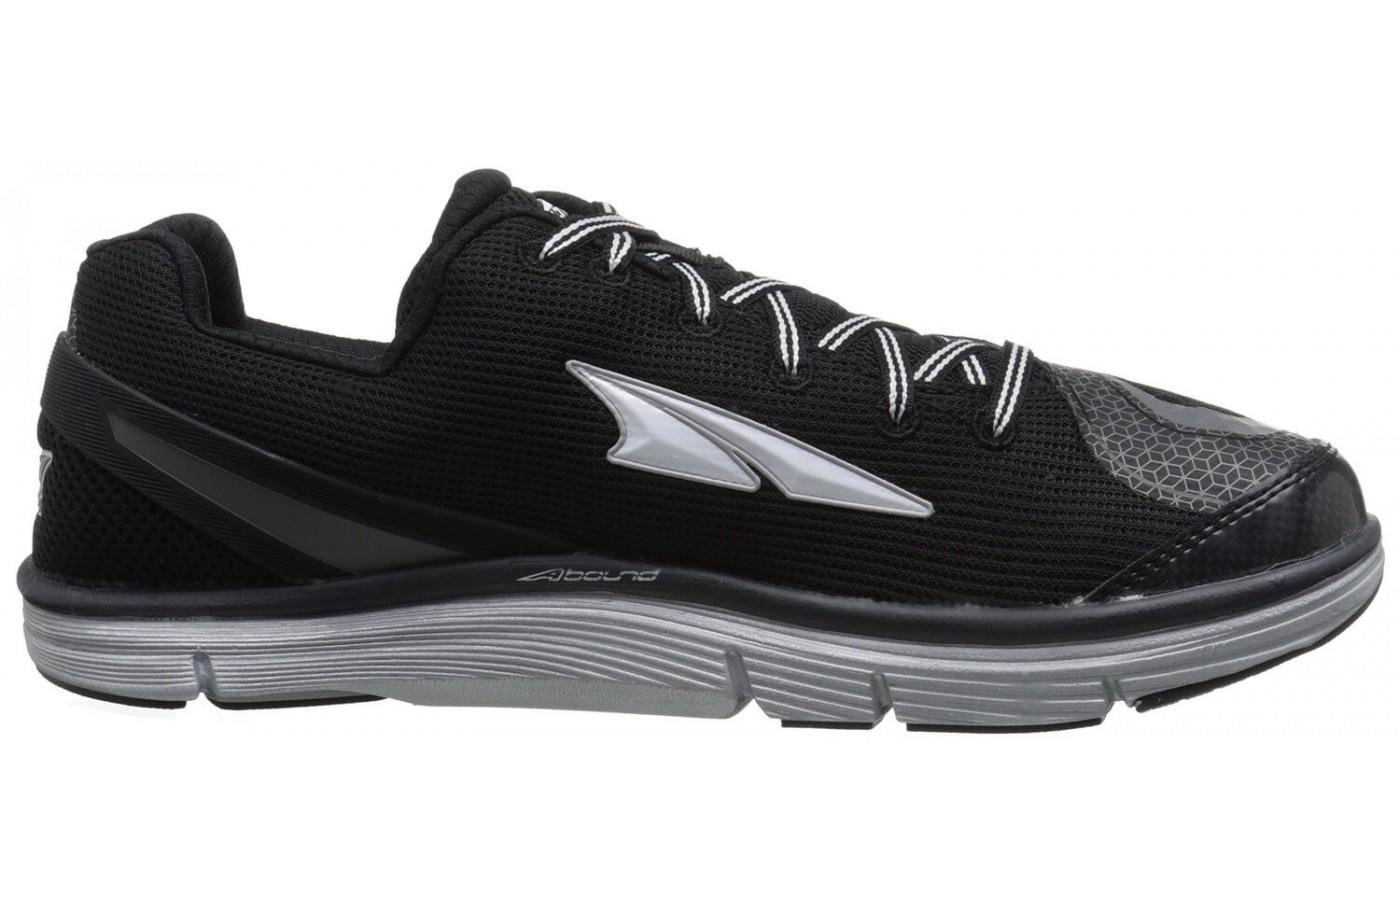 here is a sideview of the Altra Instinct 3.5